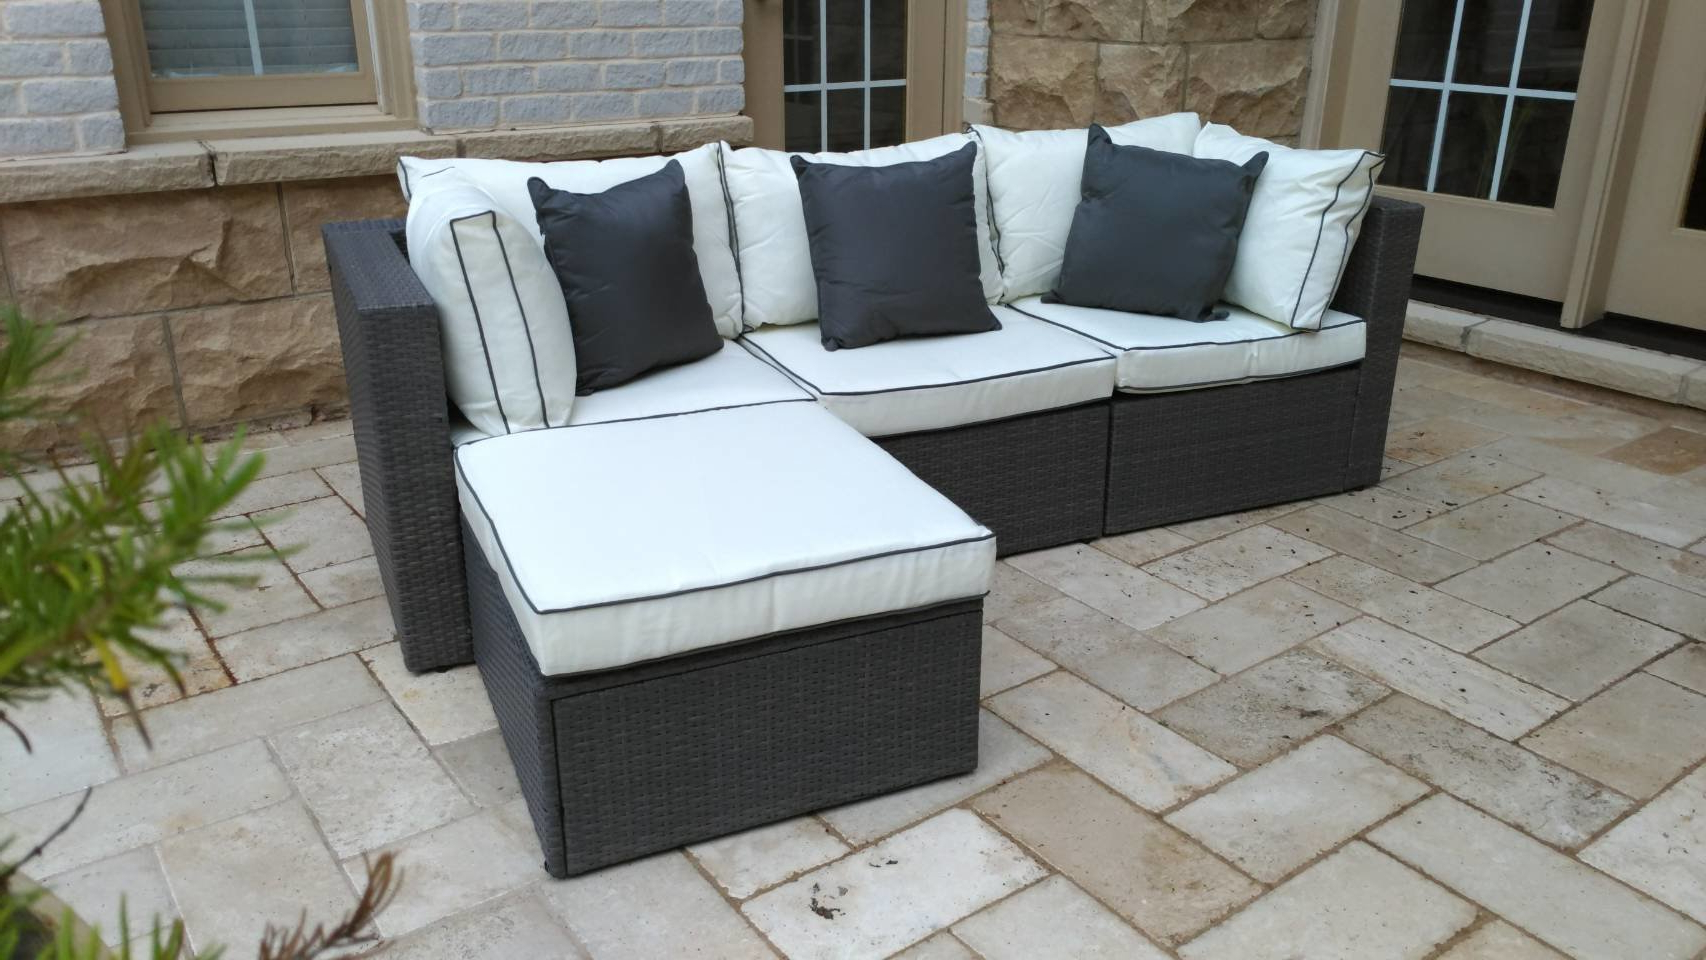 Popular Burruss Patio Sectional With Cushions Inside Purington Circular Patio Sectionals With Cushions (View 9 of 20)